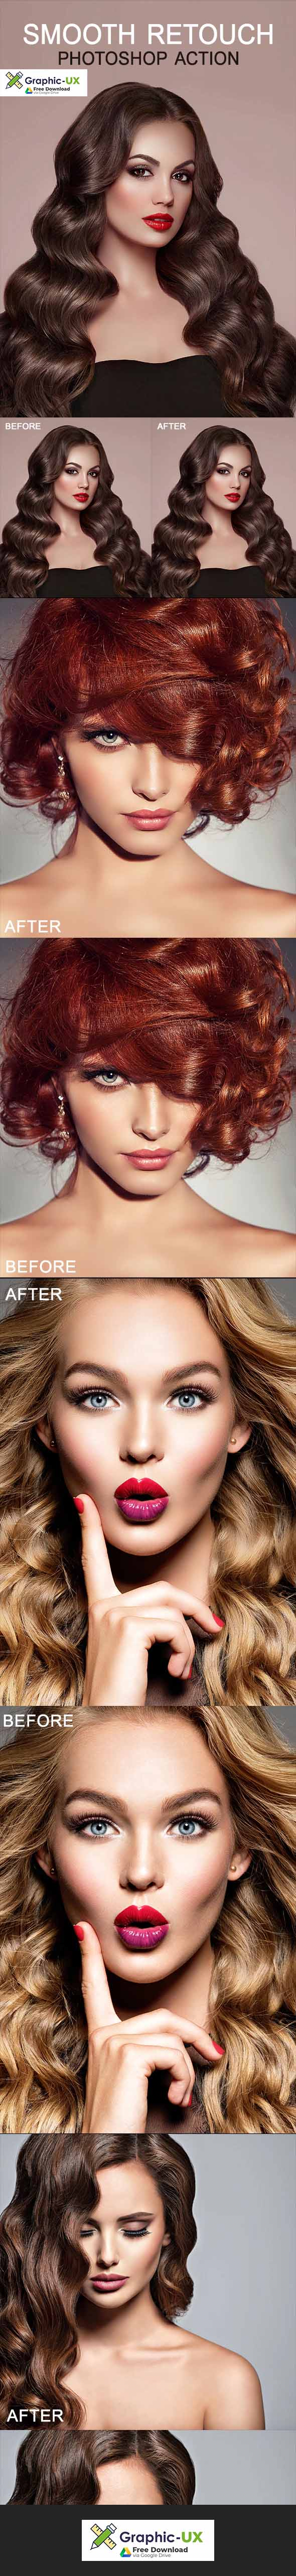 SMOOTH RETOUCH Photoshop Action